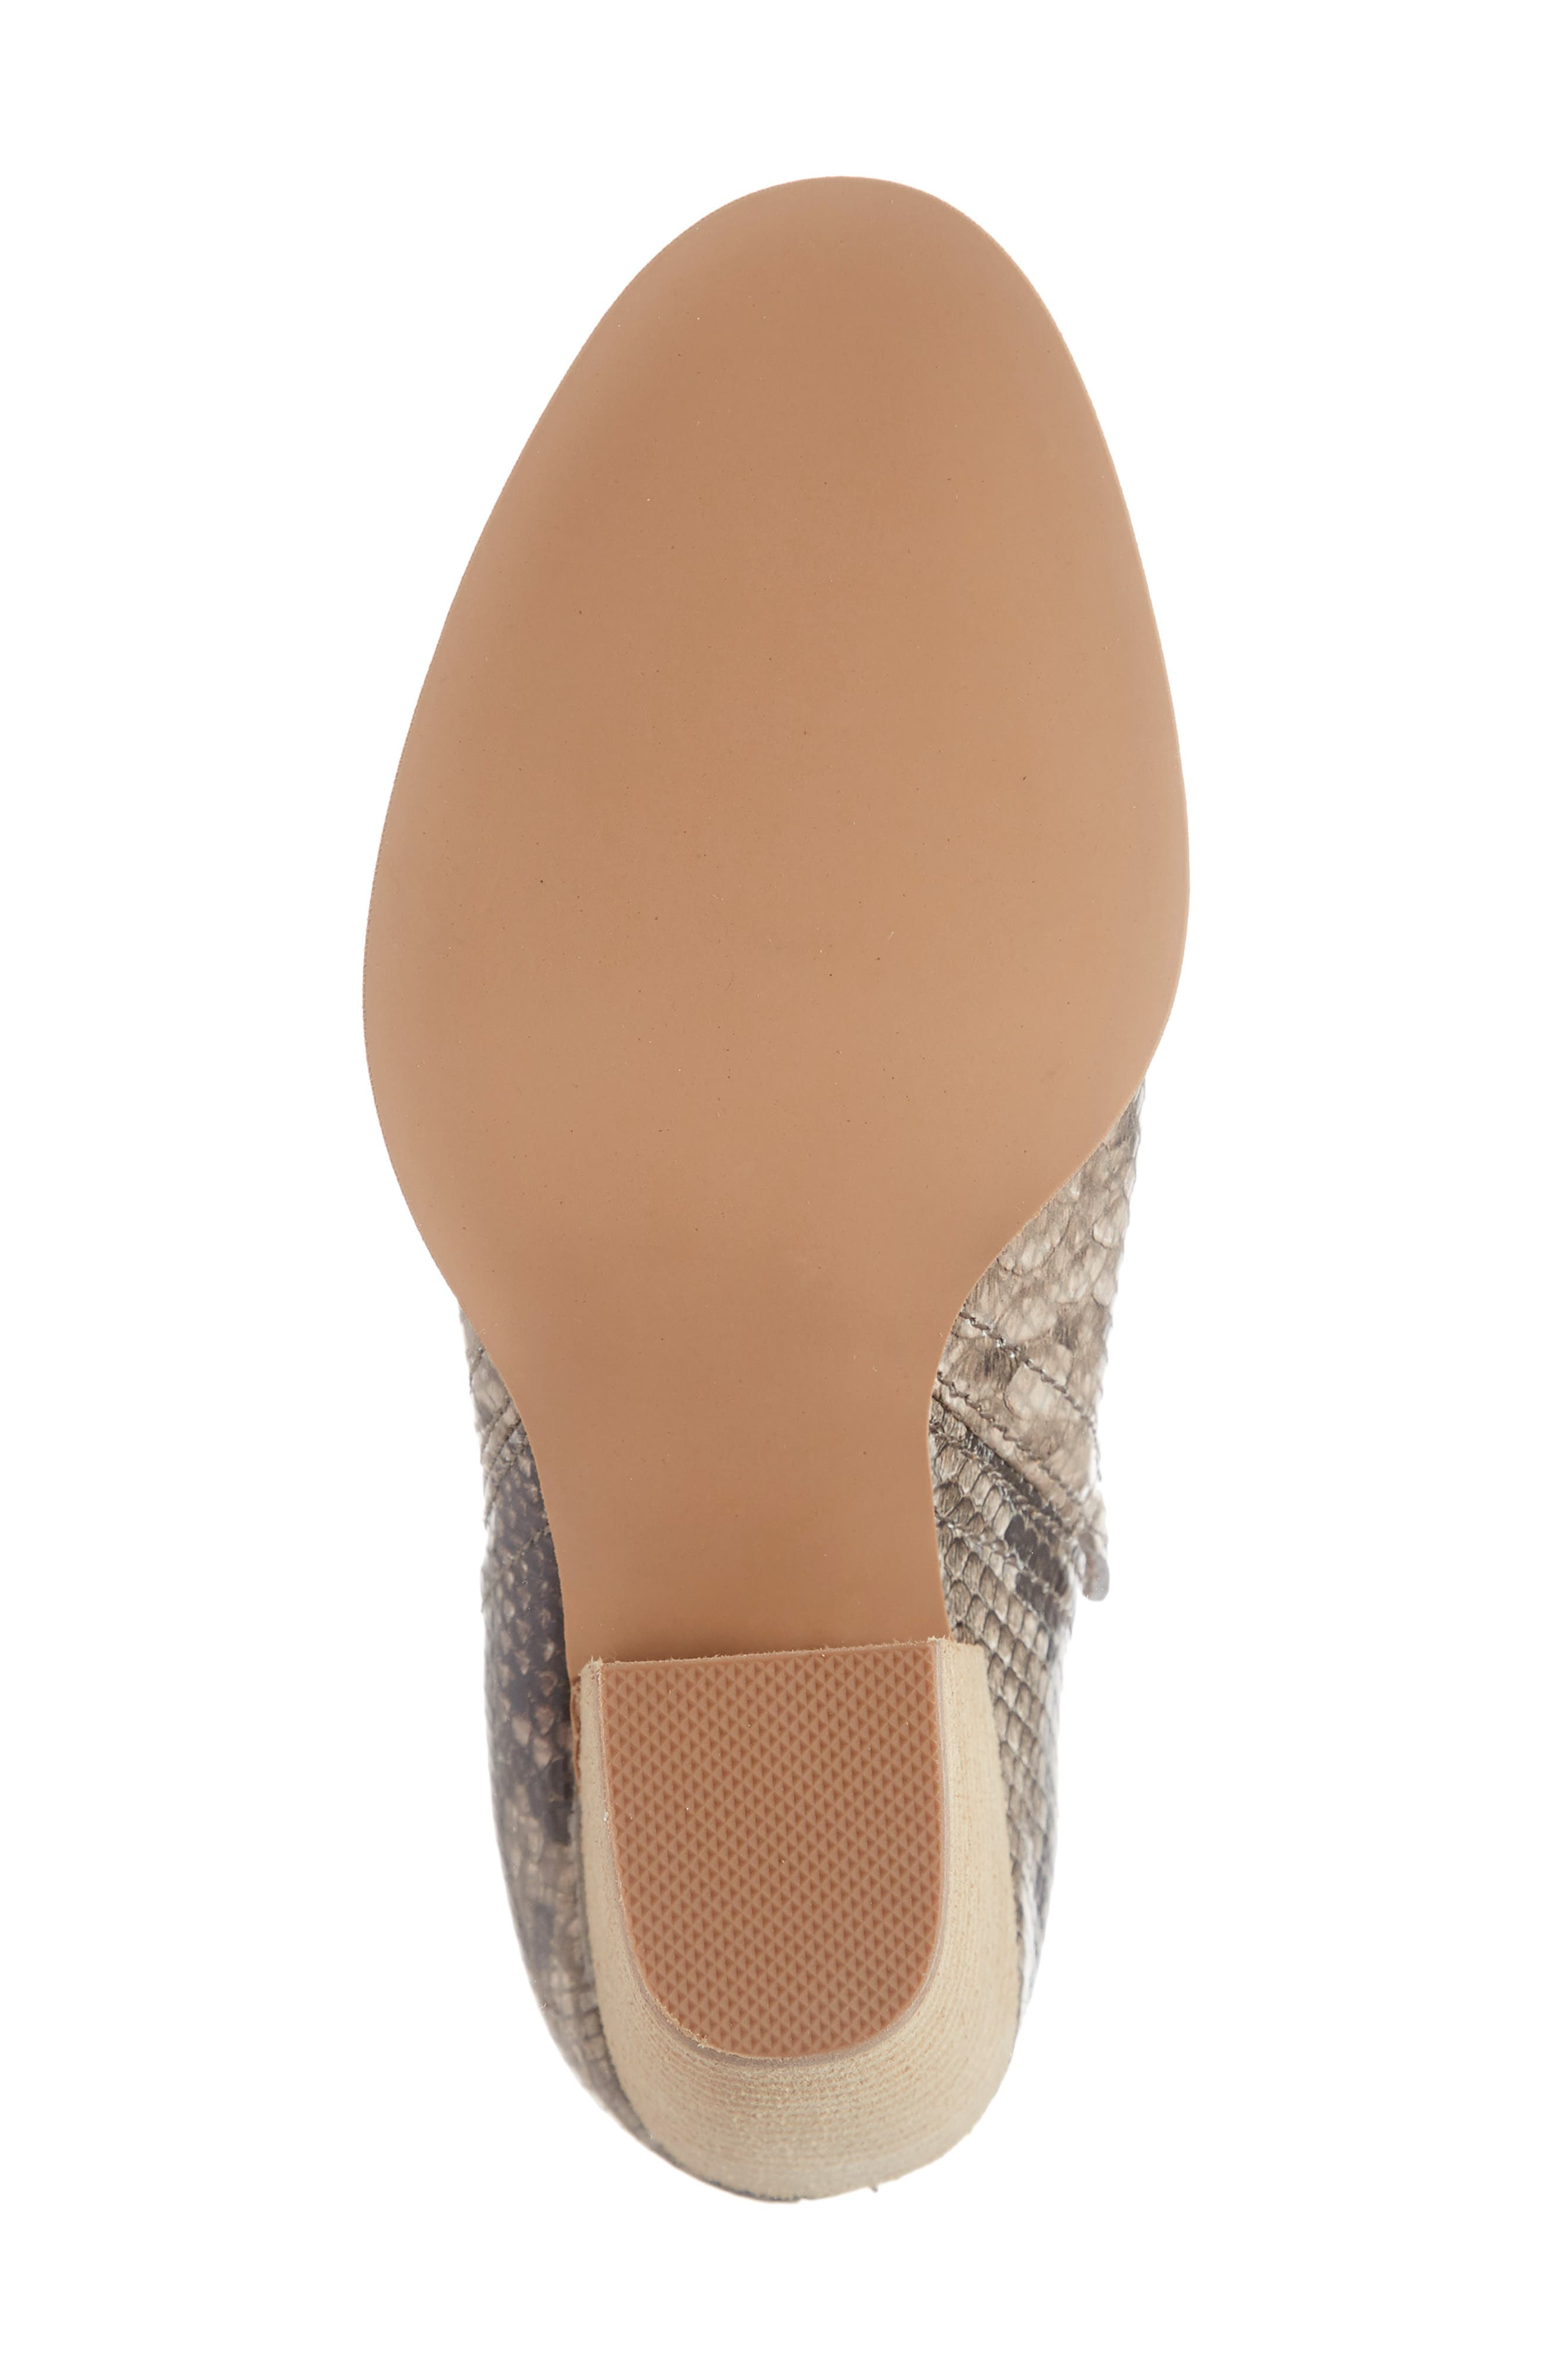 Rosalee Bootie,                             Alternate thumbnail 6, color,                             TAUPE SNAKE PRINT MULTI